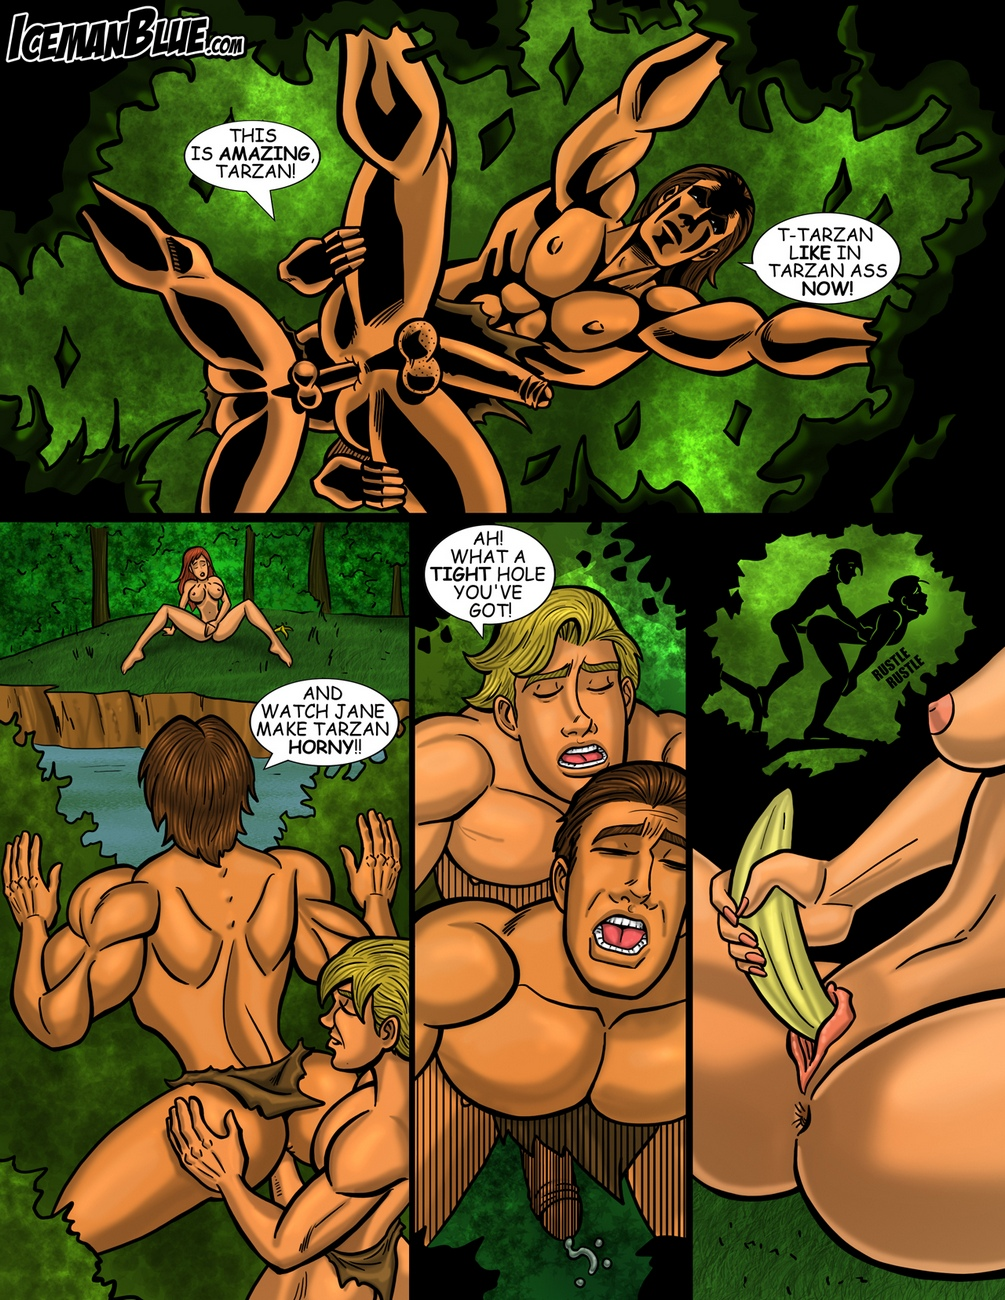 Tarzan gay furry comic